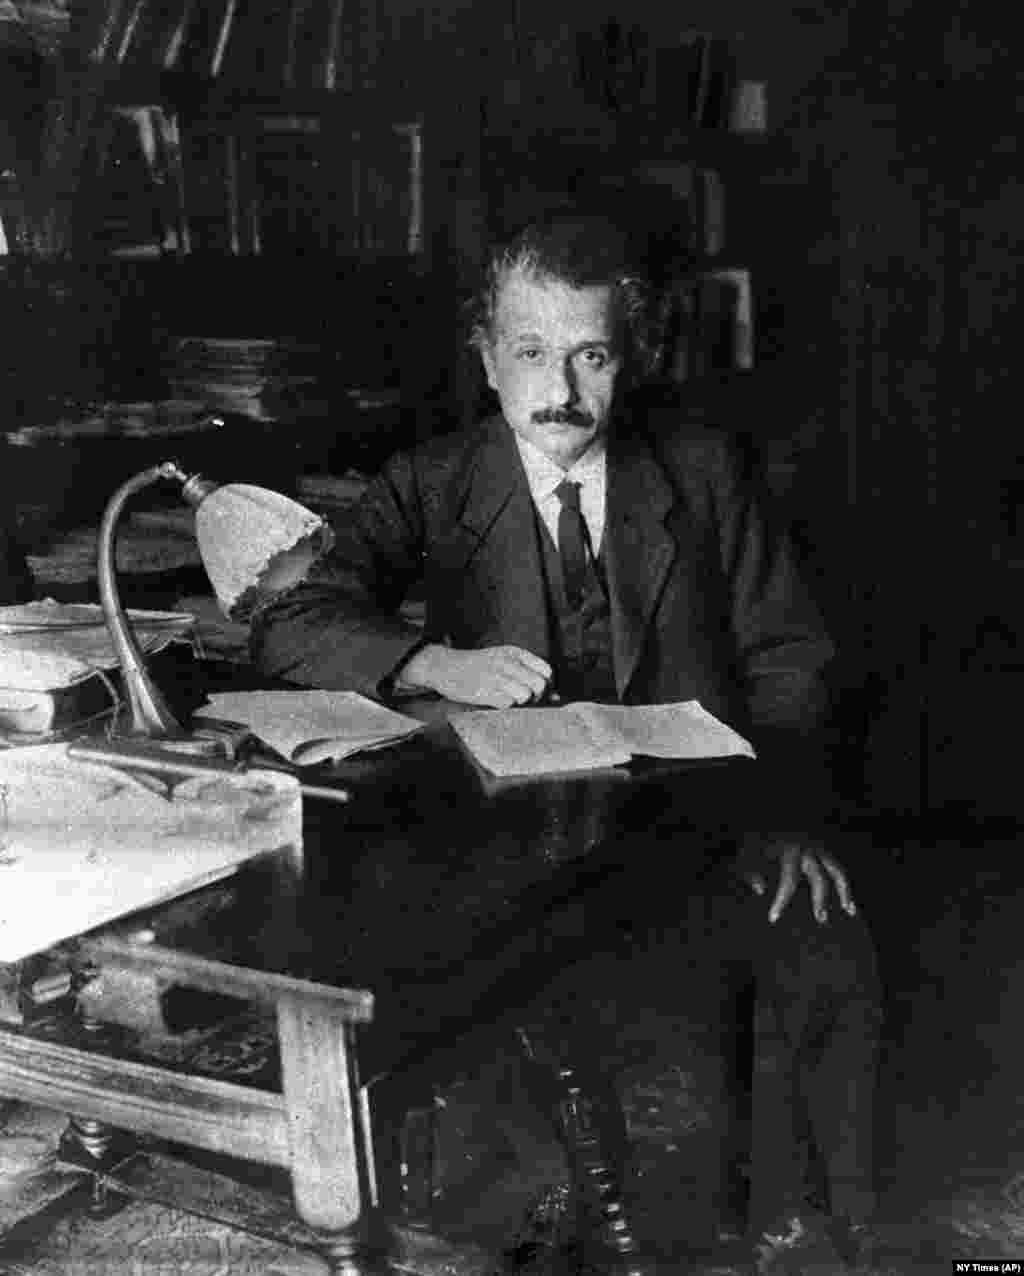 Albert Einstein poses in his study in Berlin in 1919 when he was 40 years old. Although recognized in scientific circles, Einstein would become a household name only after receiving the Nobel Prize for Physics in 1921.